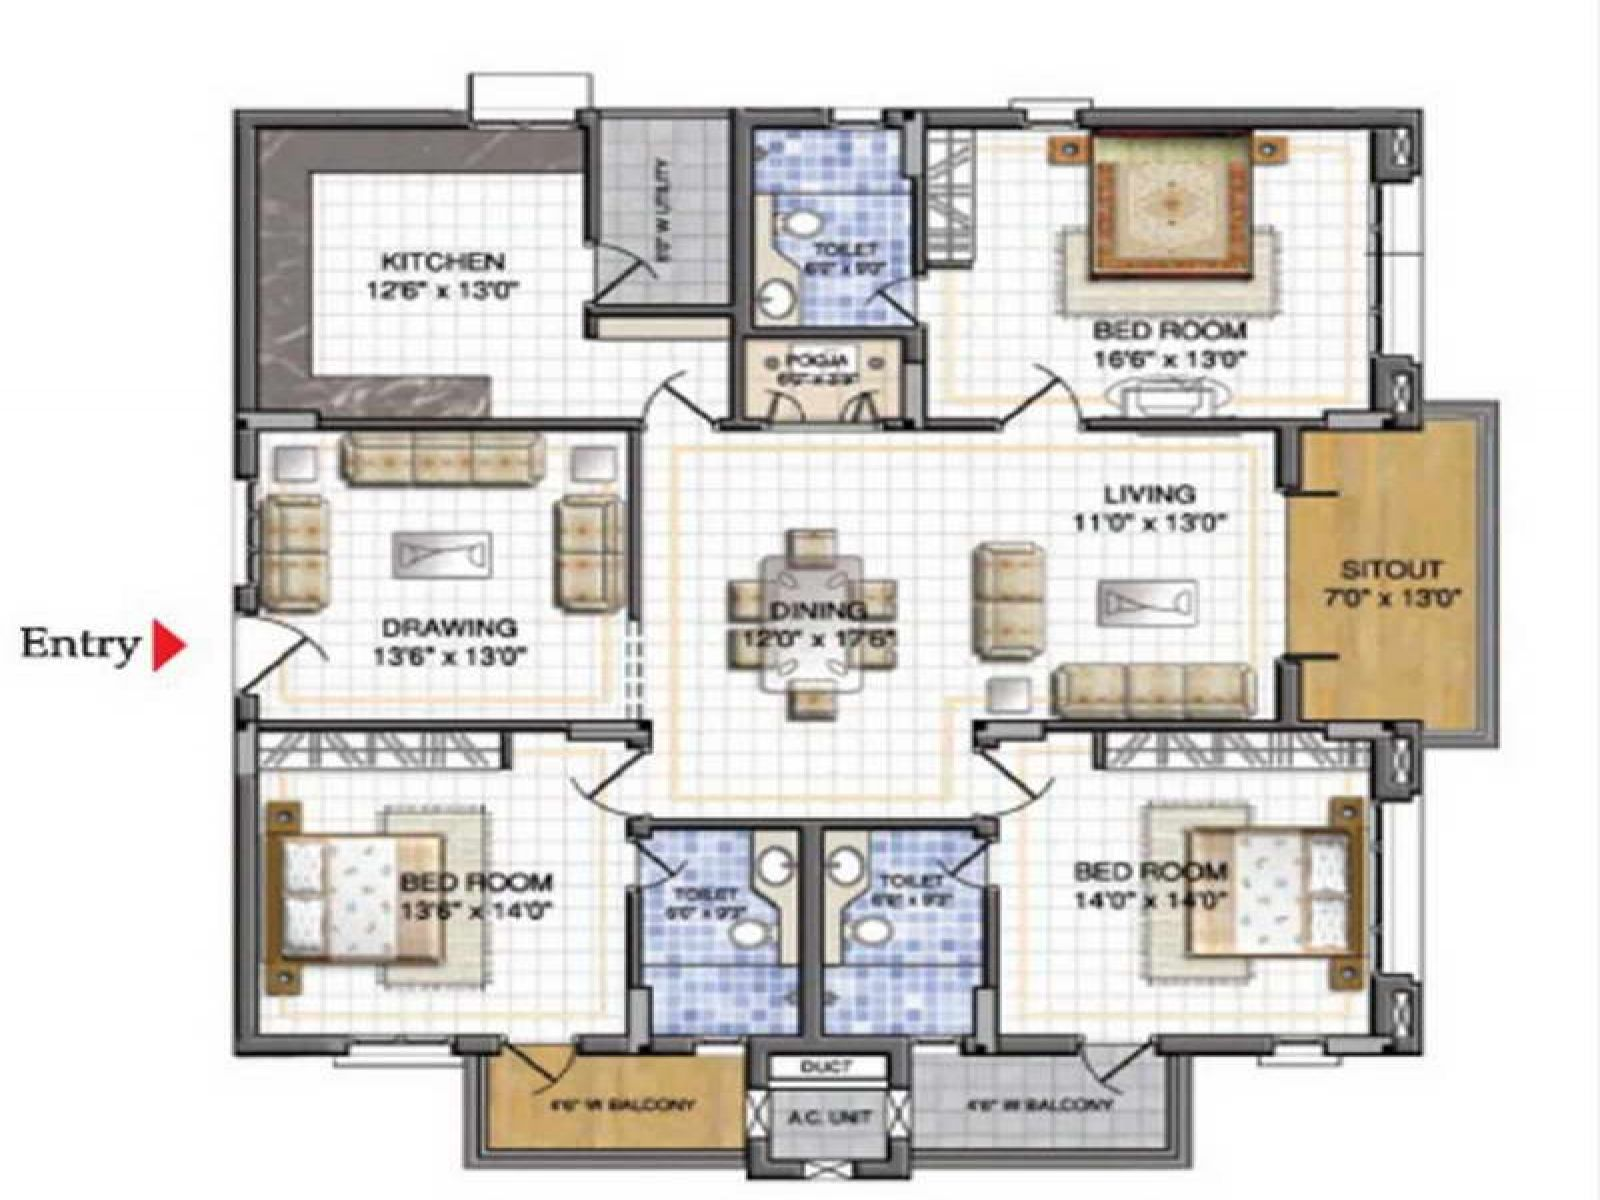 1bfcecd1e7236ae623c94b7341db508f 21 best floor plans images on pinterest,House Building Plans Online